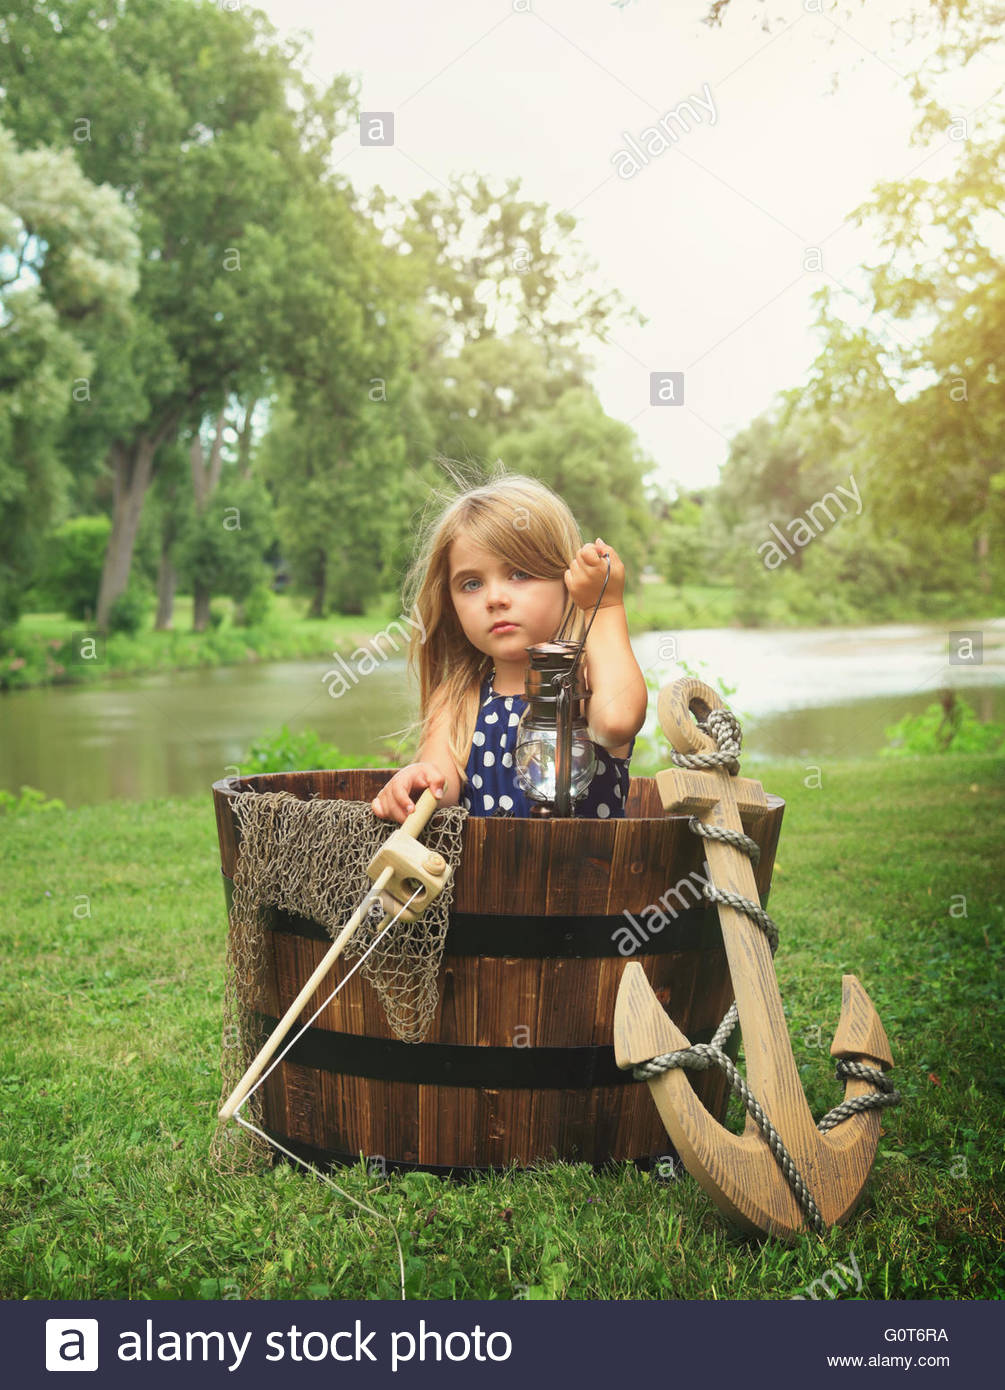 A little child is sitting in a wooden boat with an anchor pretending to fish for an imagination or exploration concept. - Stock Image